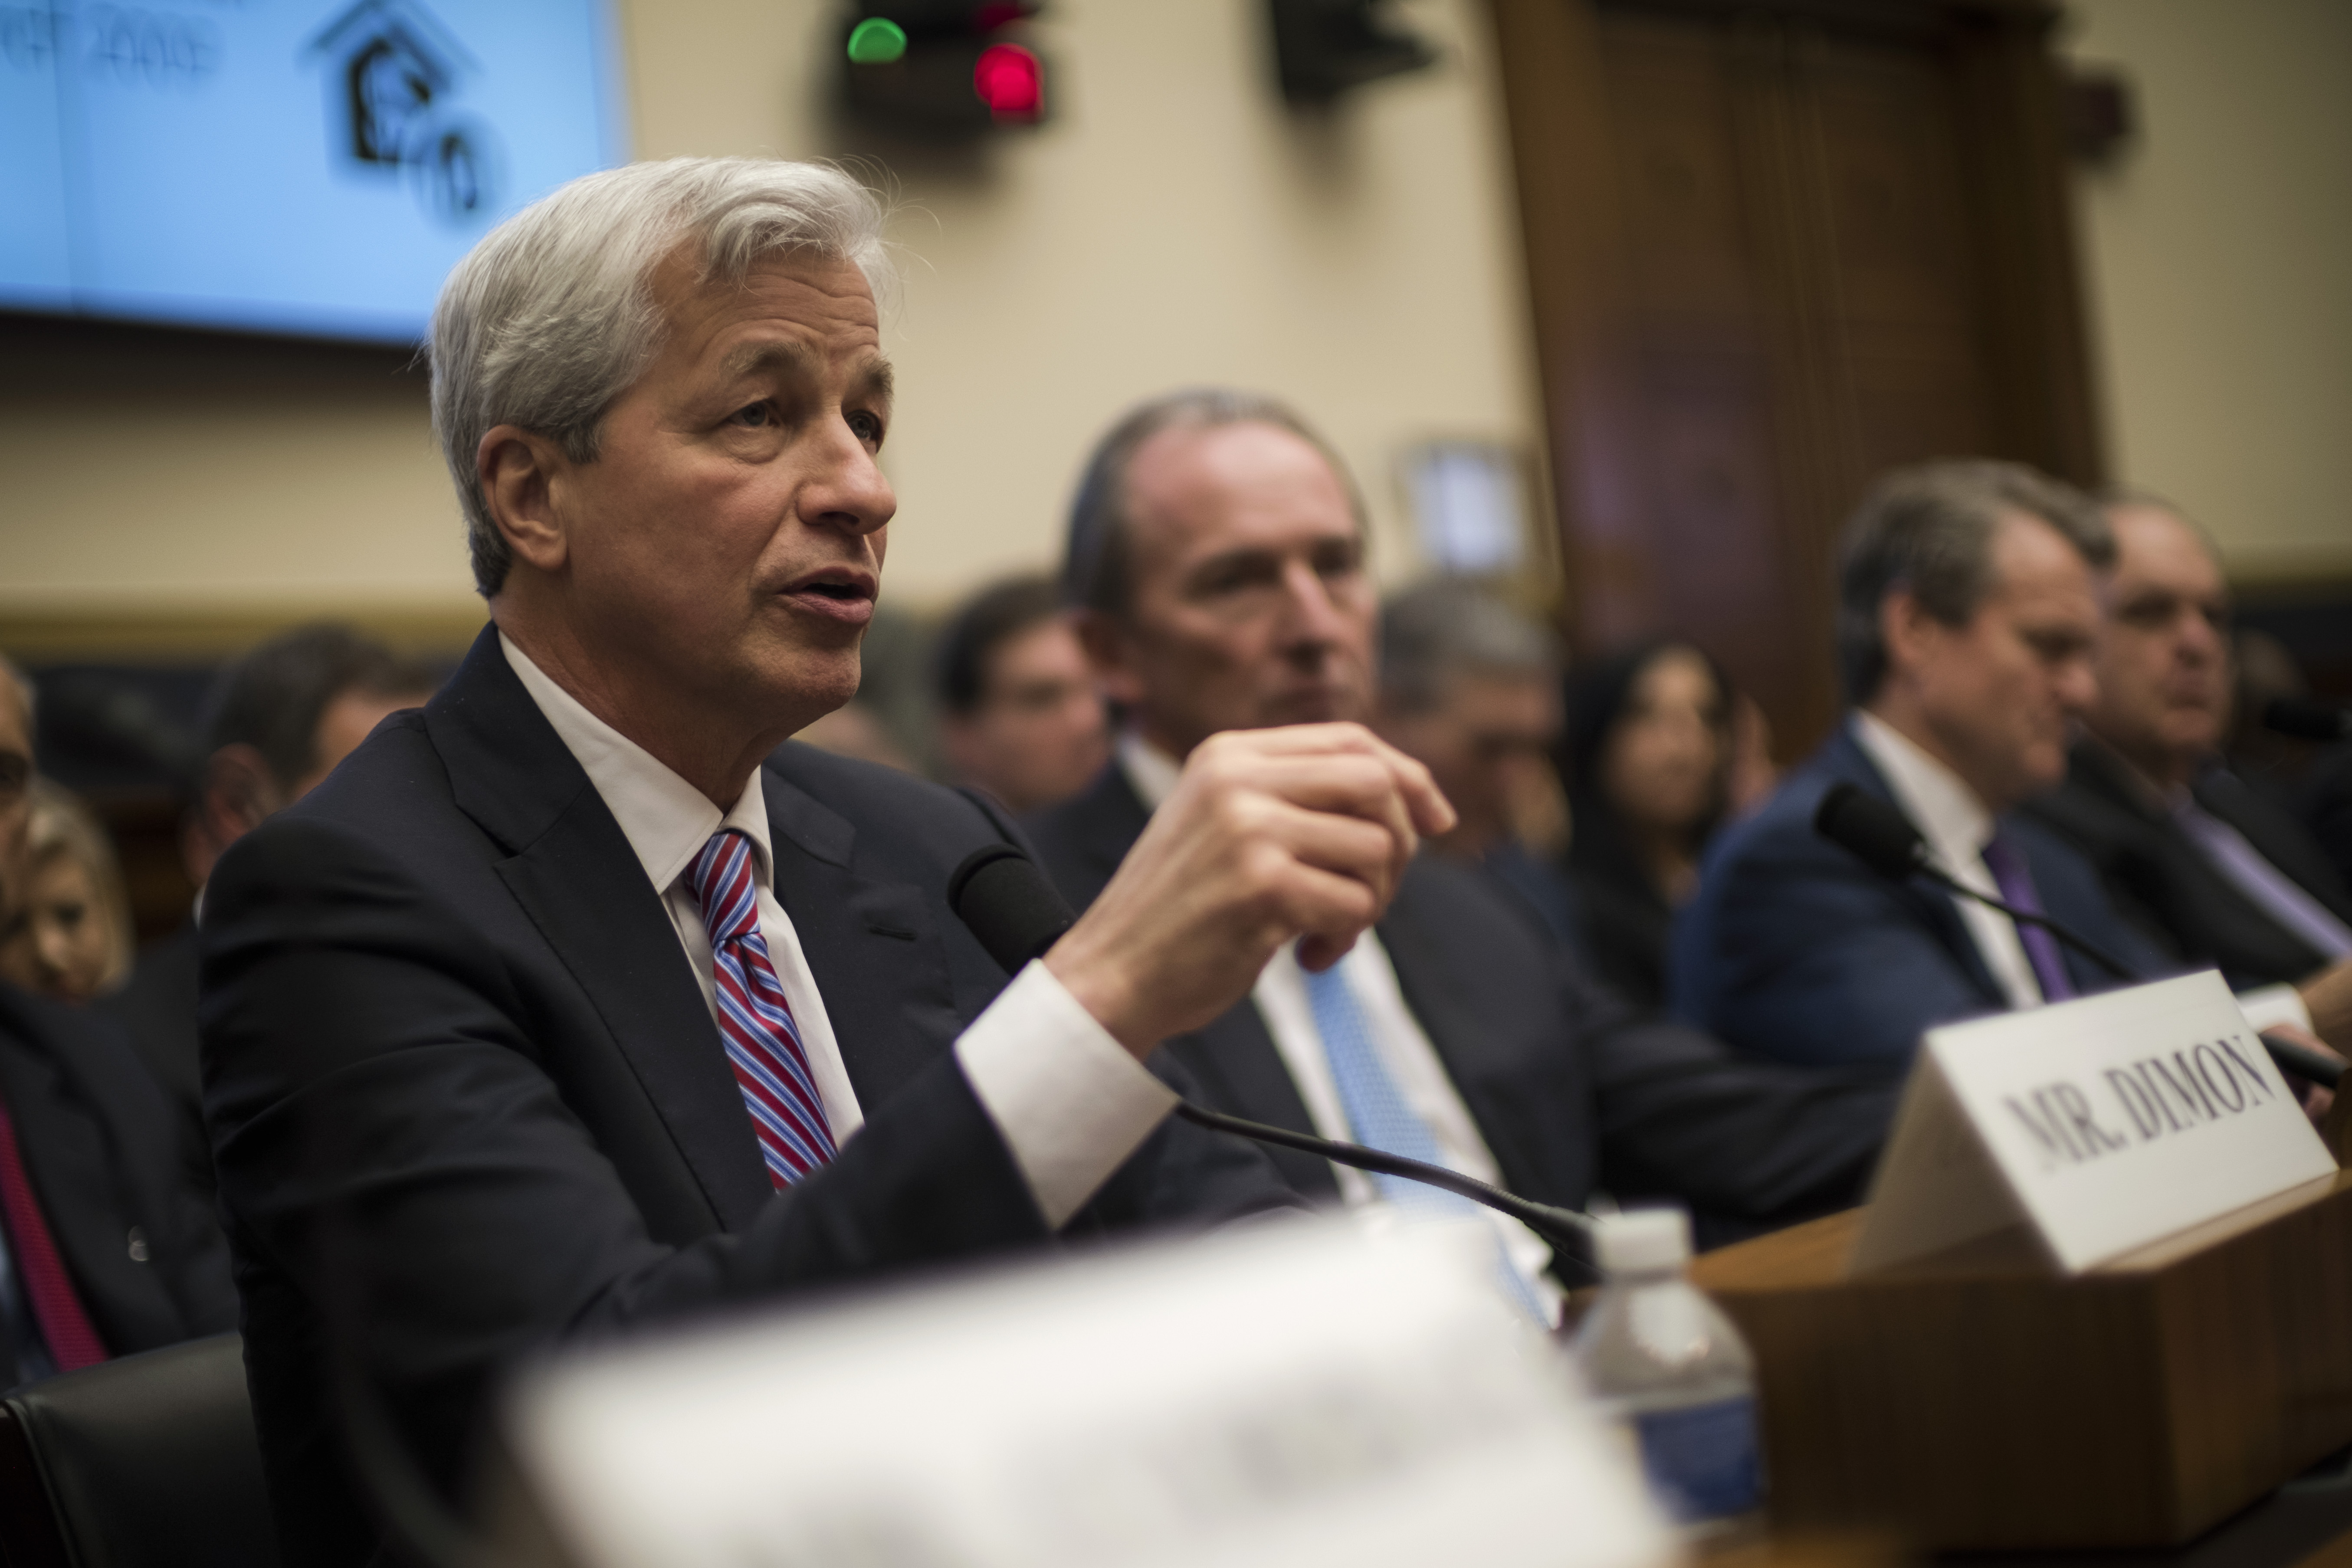 Jamie Dimon, Chair and CEO of JP Morgan Chase, testifies before the House Financial Services Commitee in Washington